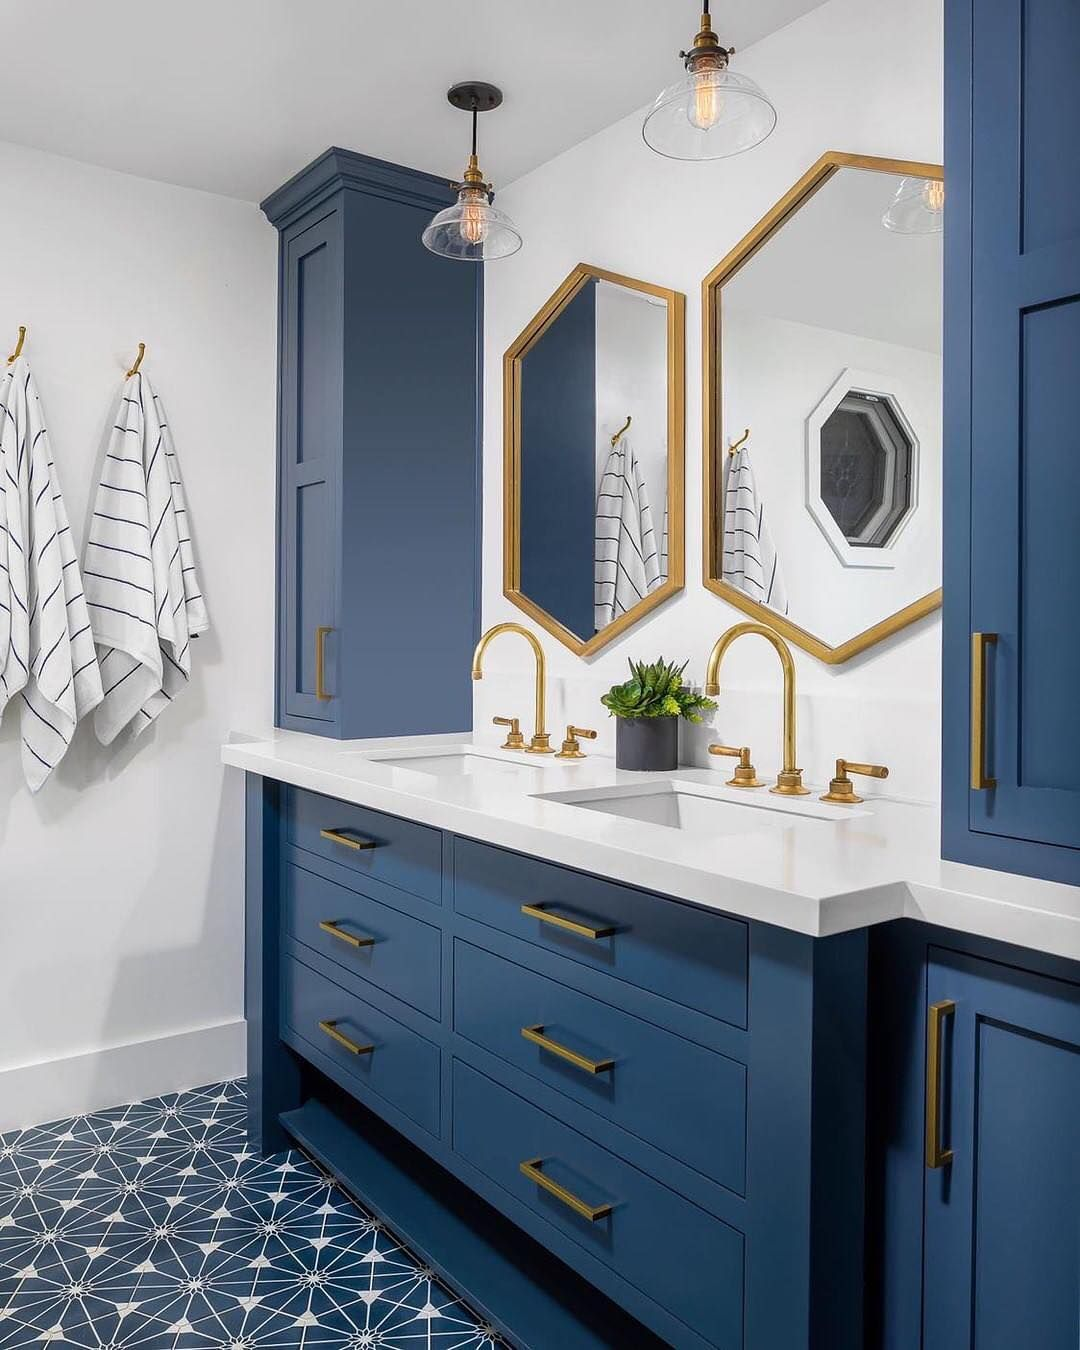 Bathroom With Navy Cabinets Marble Countertops And Gold Light Fixtures And Pulls Bathroom Renos Bathrooms Remodel Amazing Bathrooms